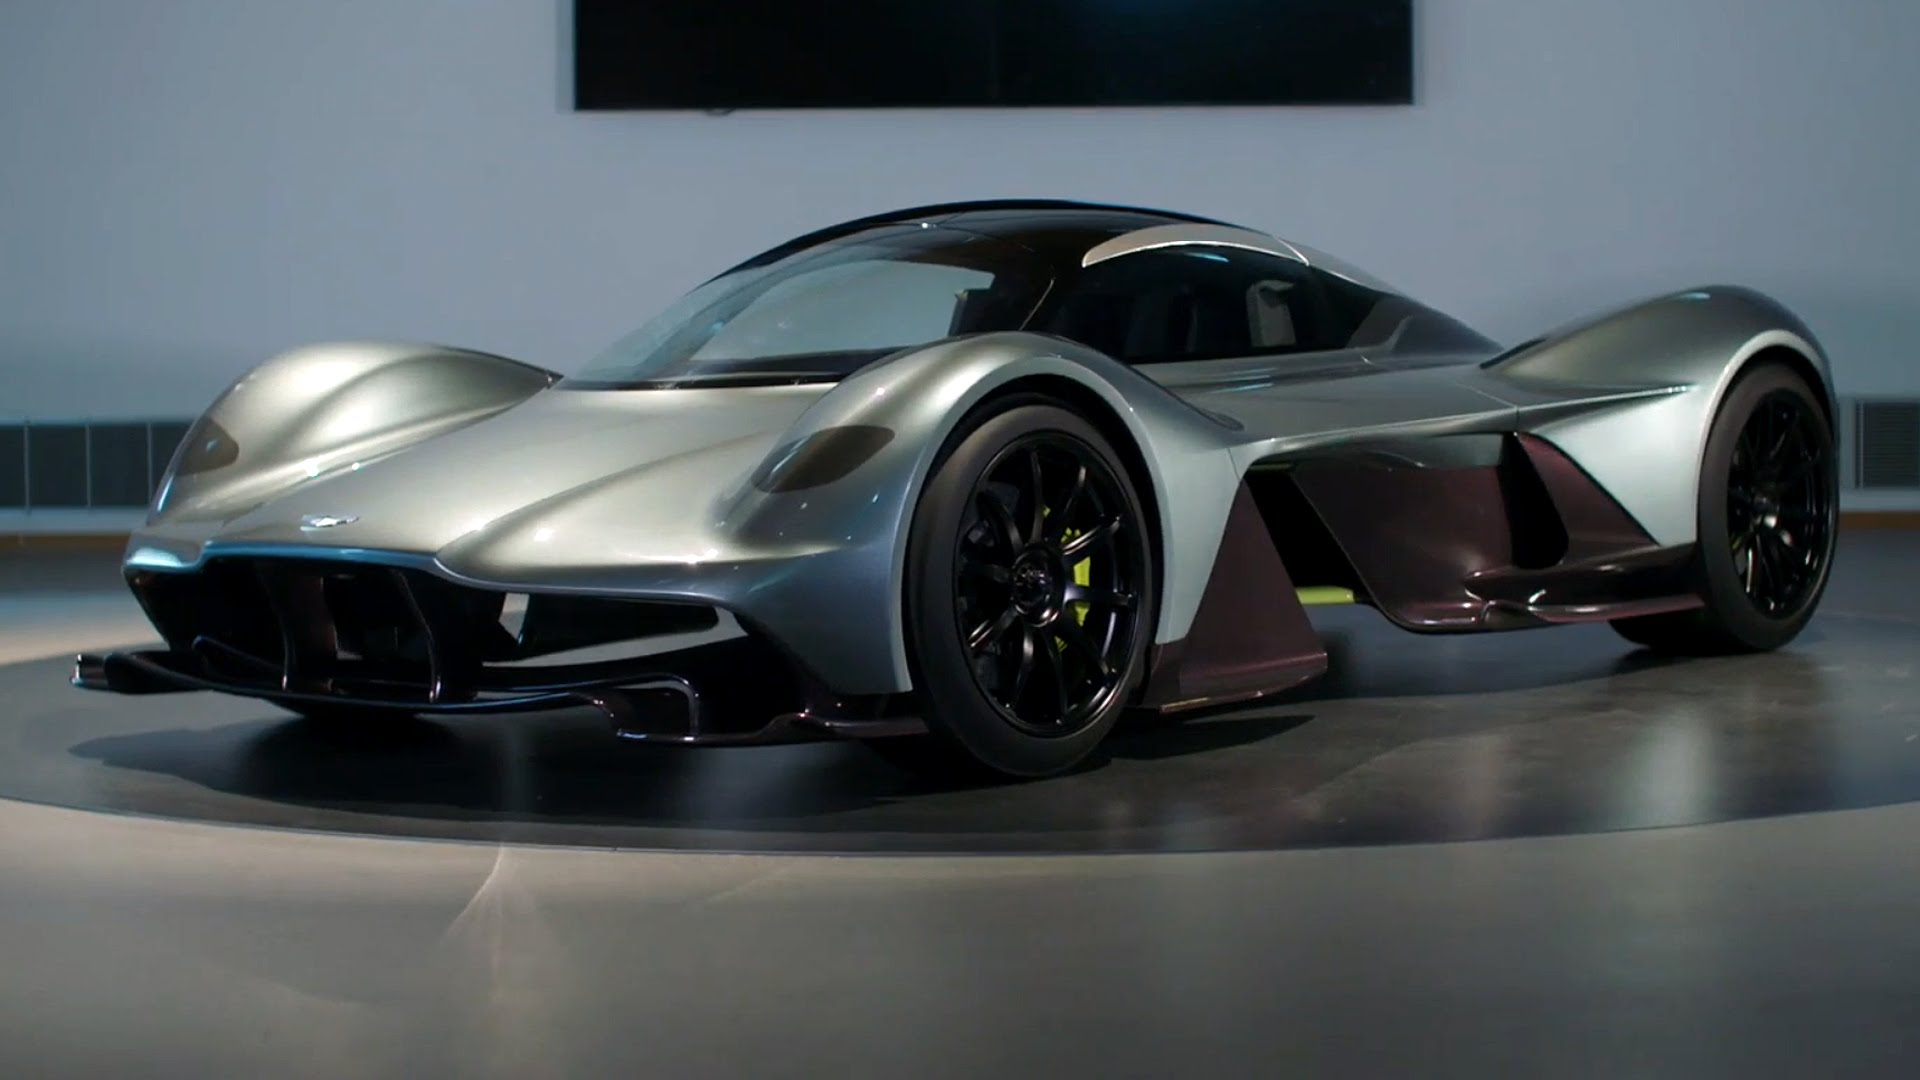 aston-martin-am-rb-001-concept-car